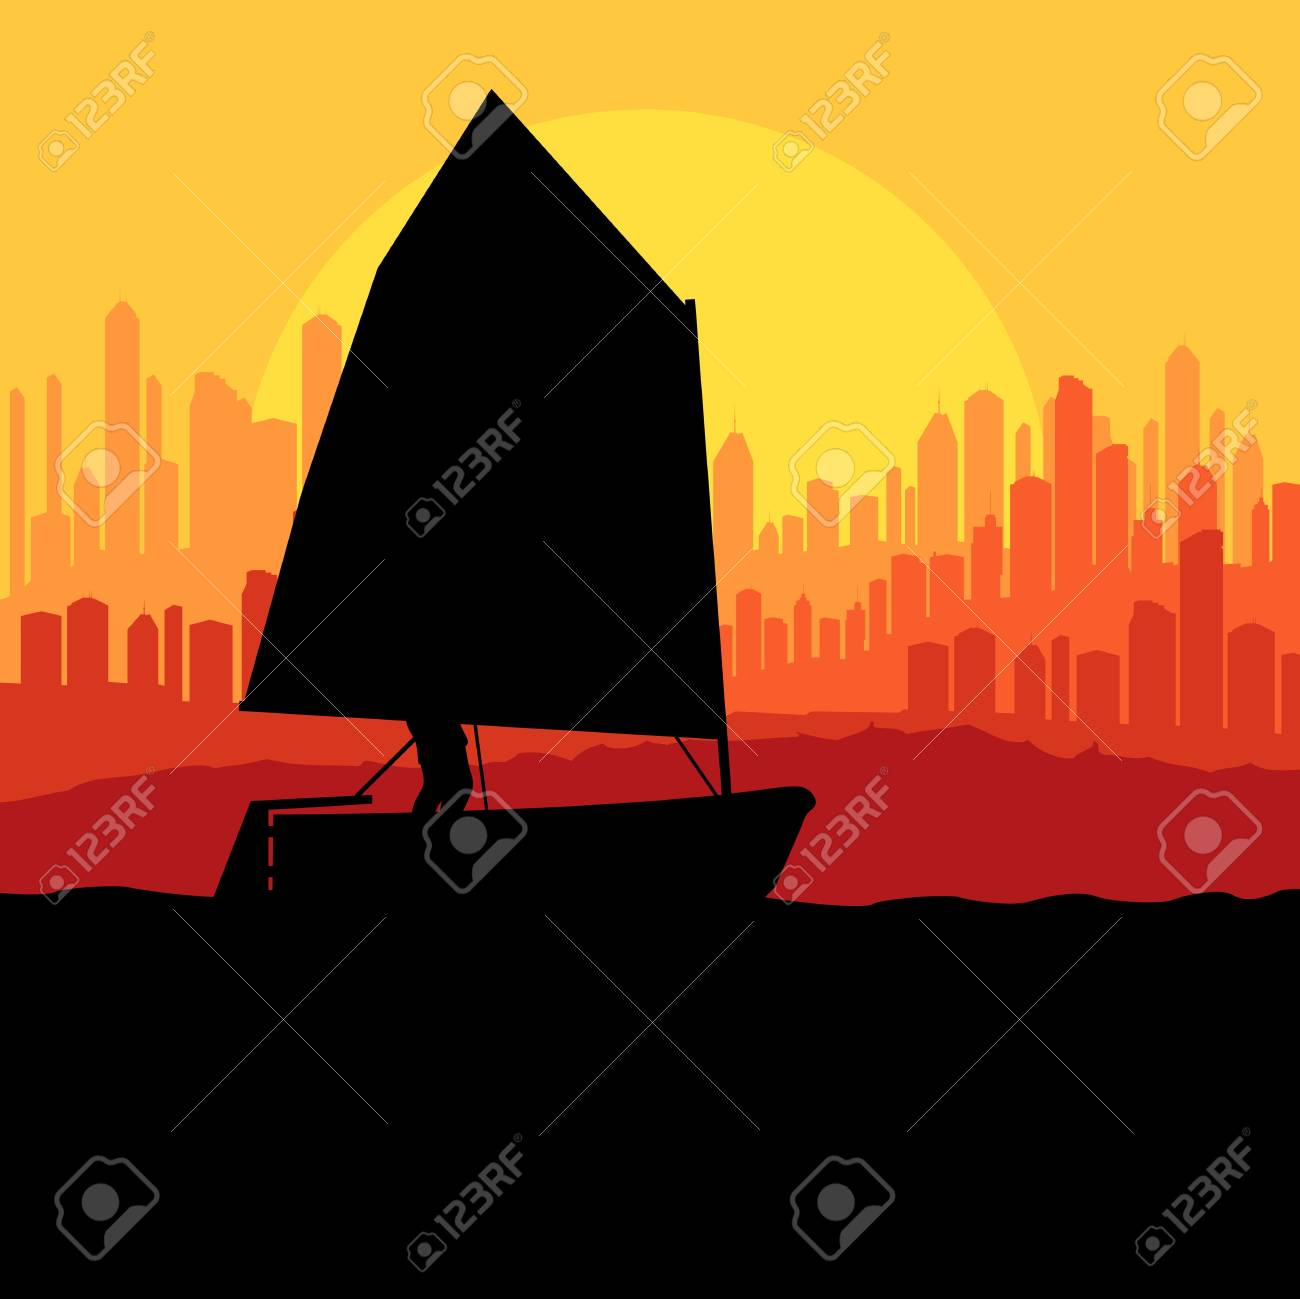 Yacht, boat sailing background for poster Stock Vector - 20899880